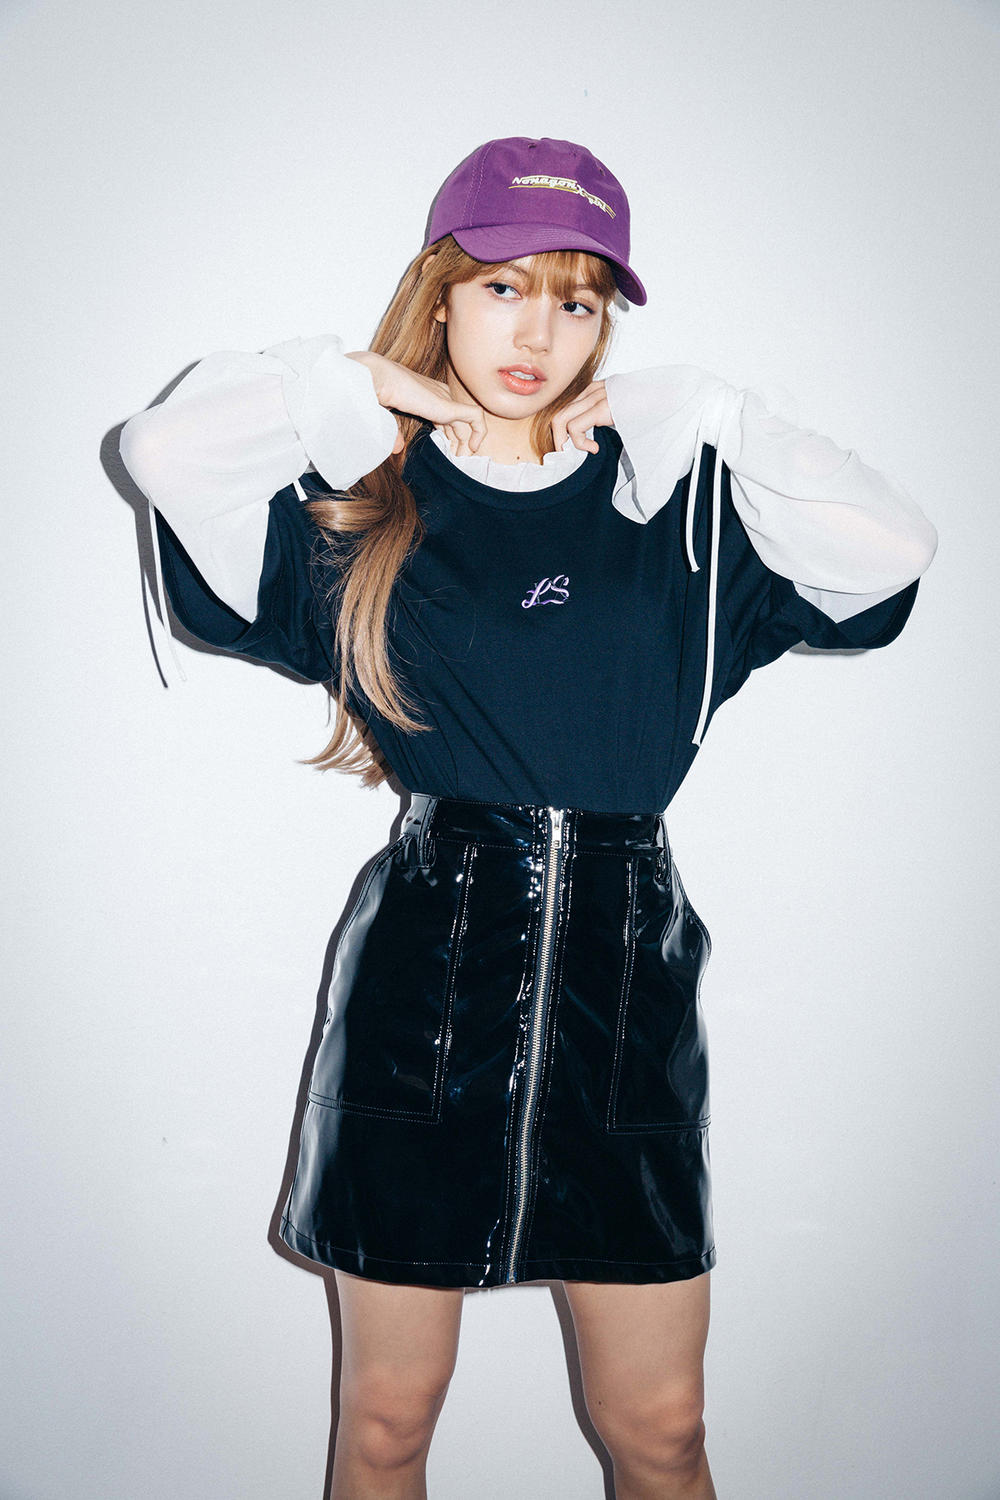 X-Girl Nonagon Blackpink Lisa Campaign Collaboration K-Pop Purple Cap Black Vinyl Skirt